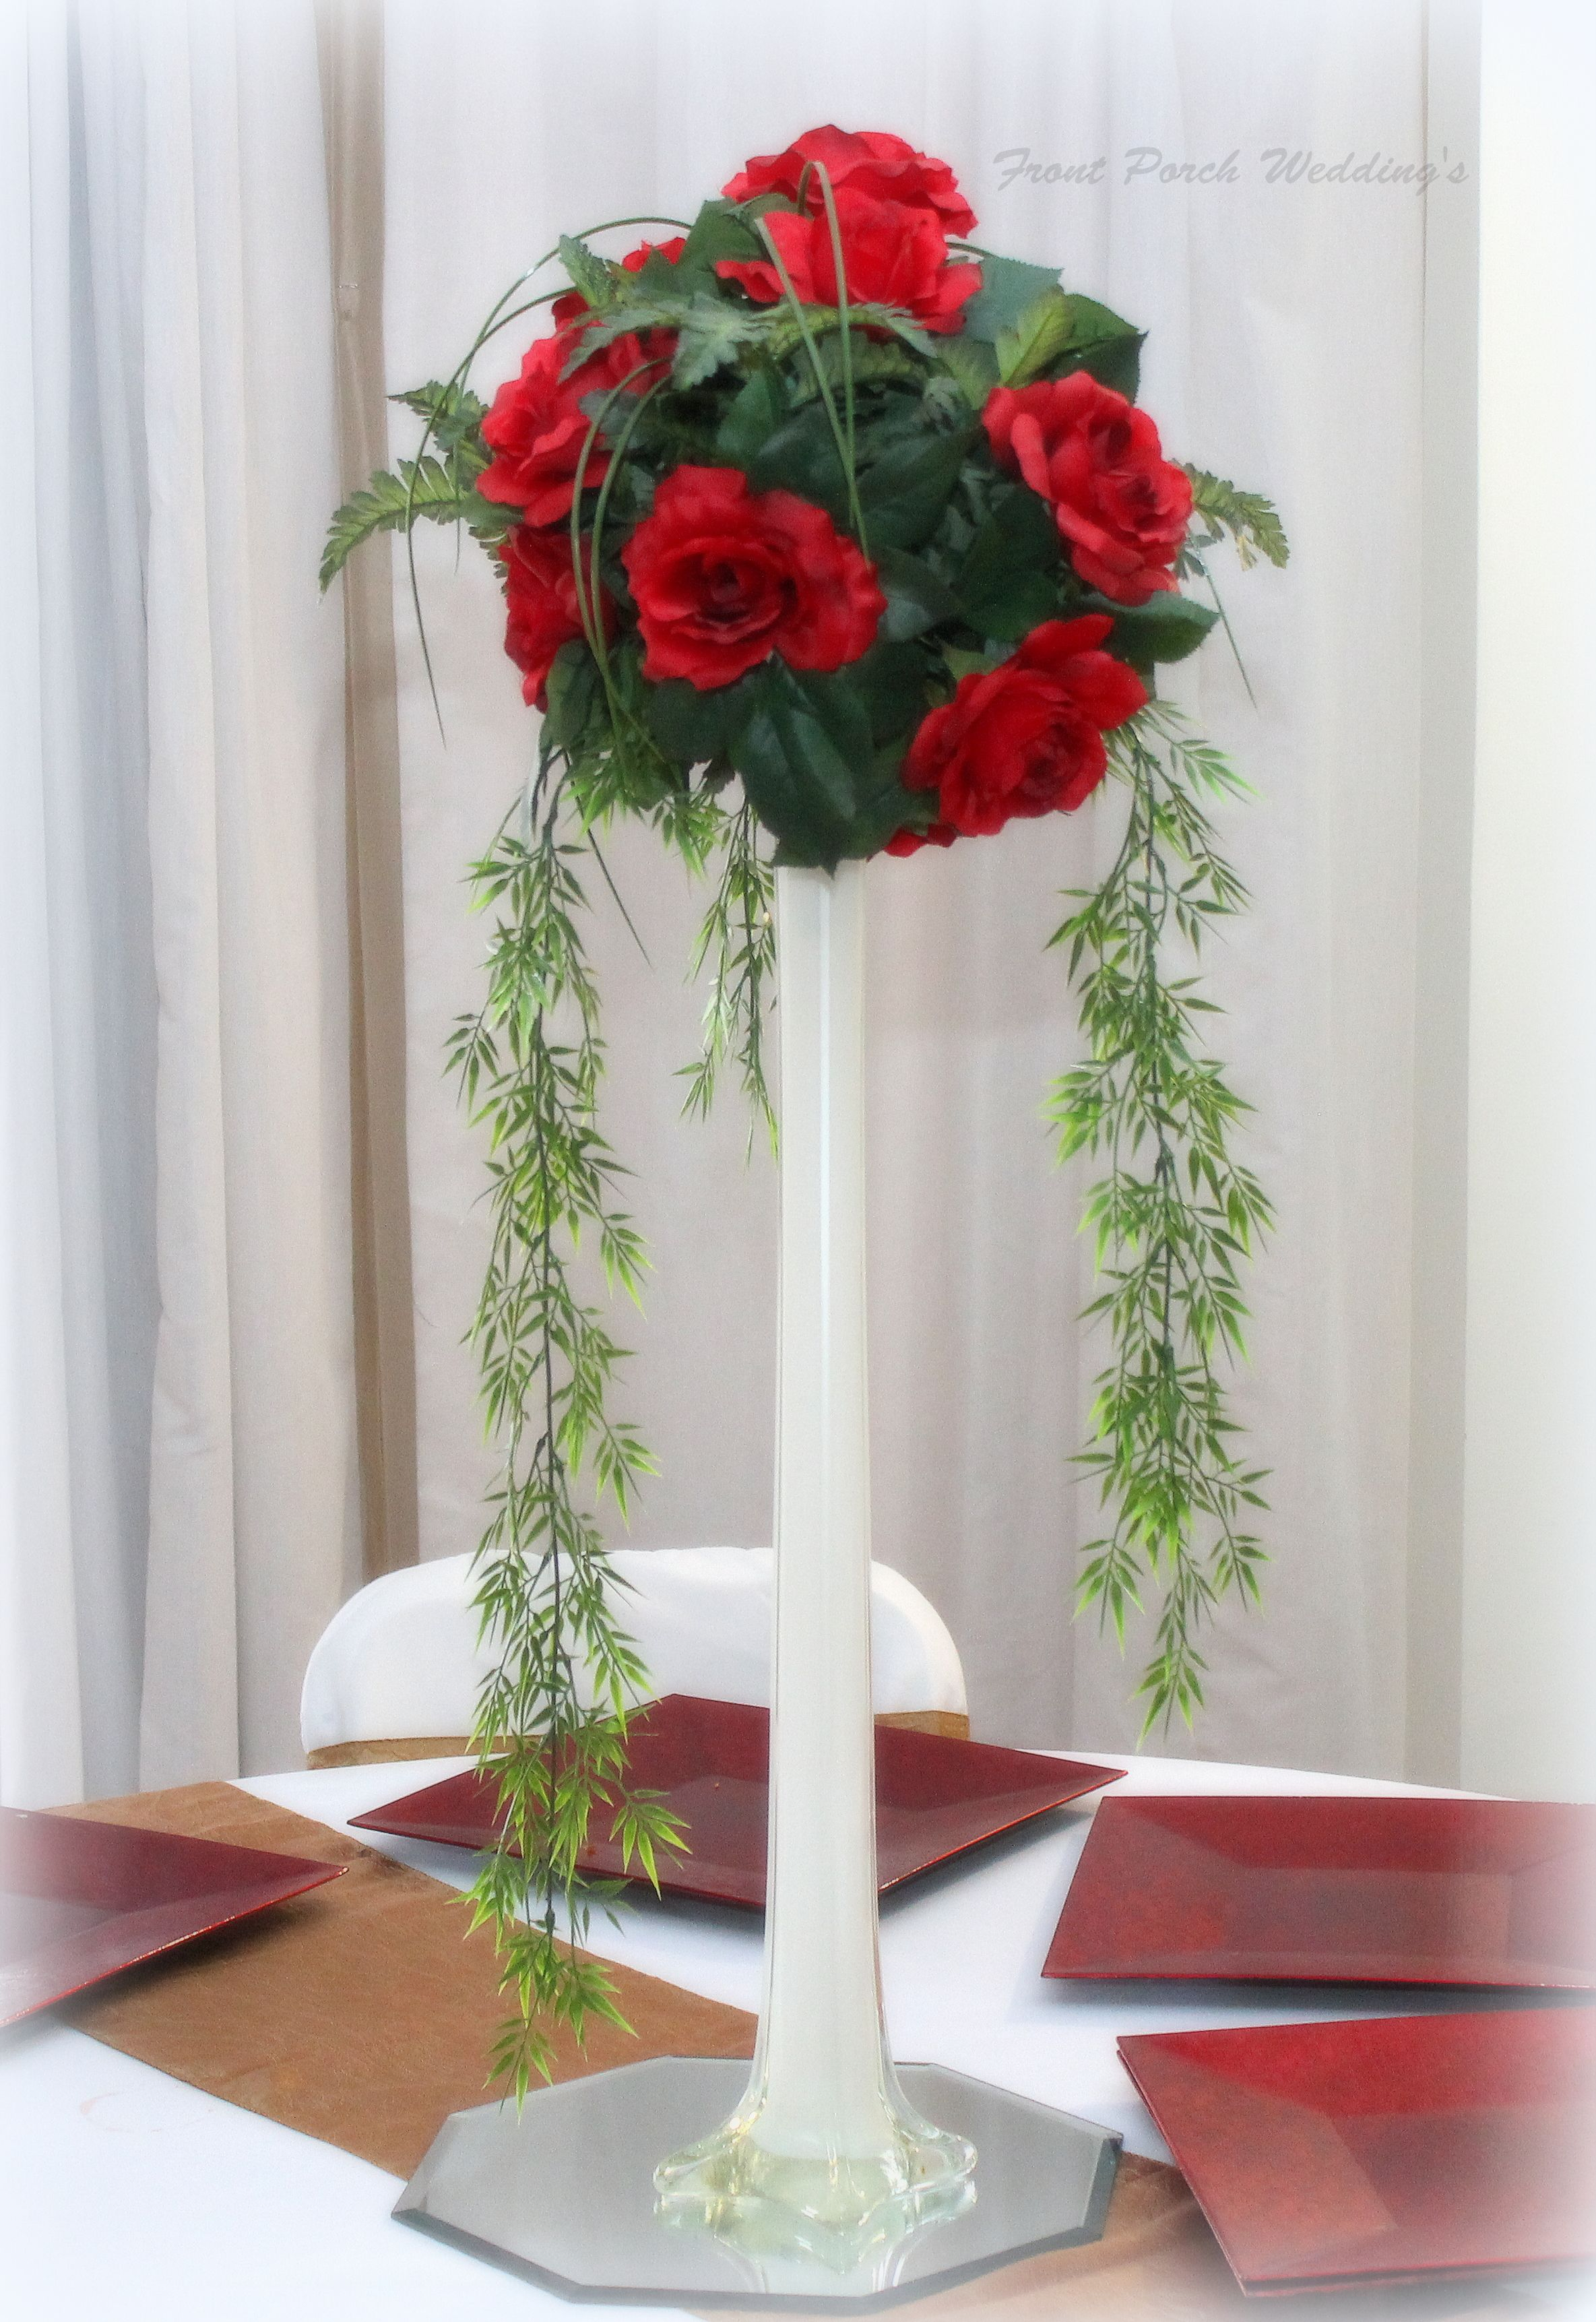 Venue Tall red centerpiece | Wedding Centerpieces and floral decor ...